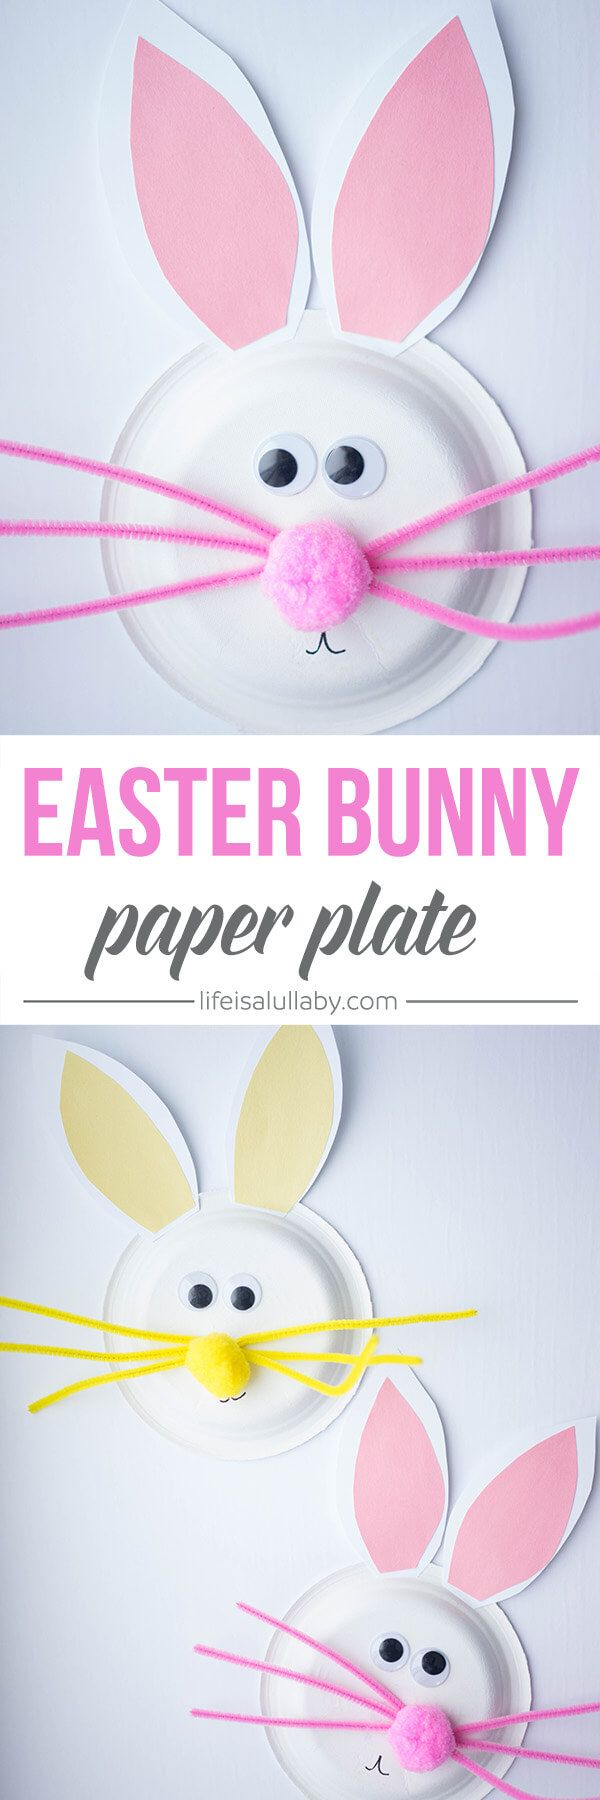 455 best easter ideas images on pinterest easter crafts for paper plate easter bunny craft negle